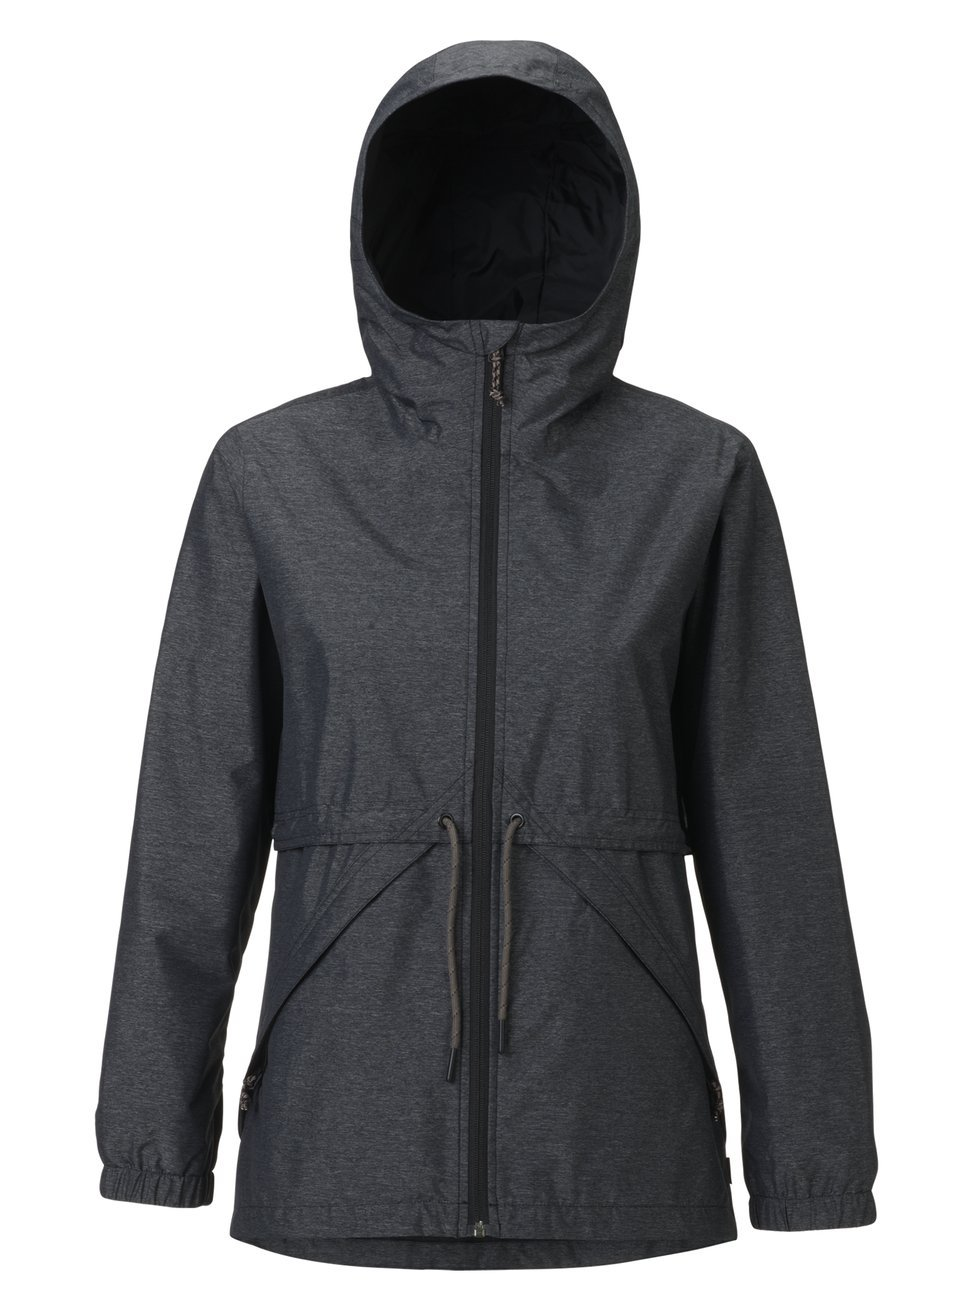 Burton Women's Narraway Jacket, True Black Heather, Small by Burton